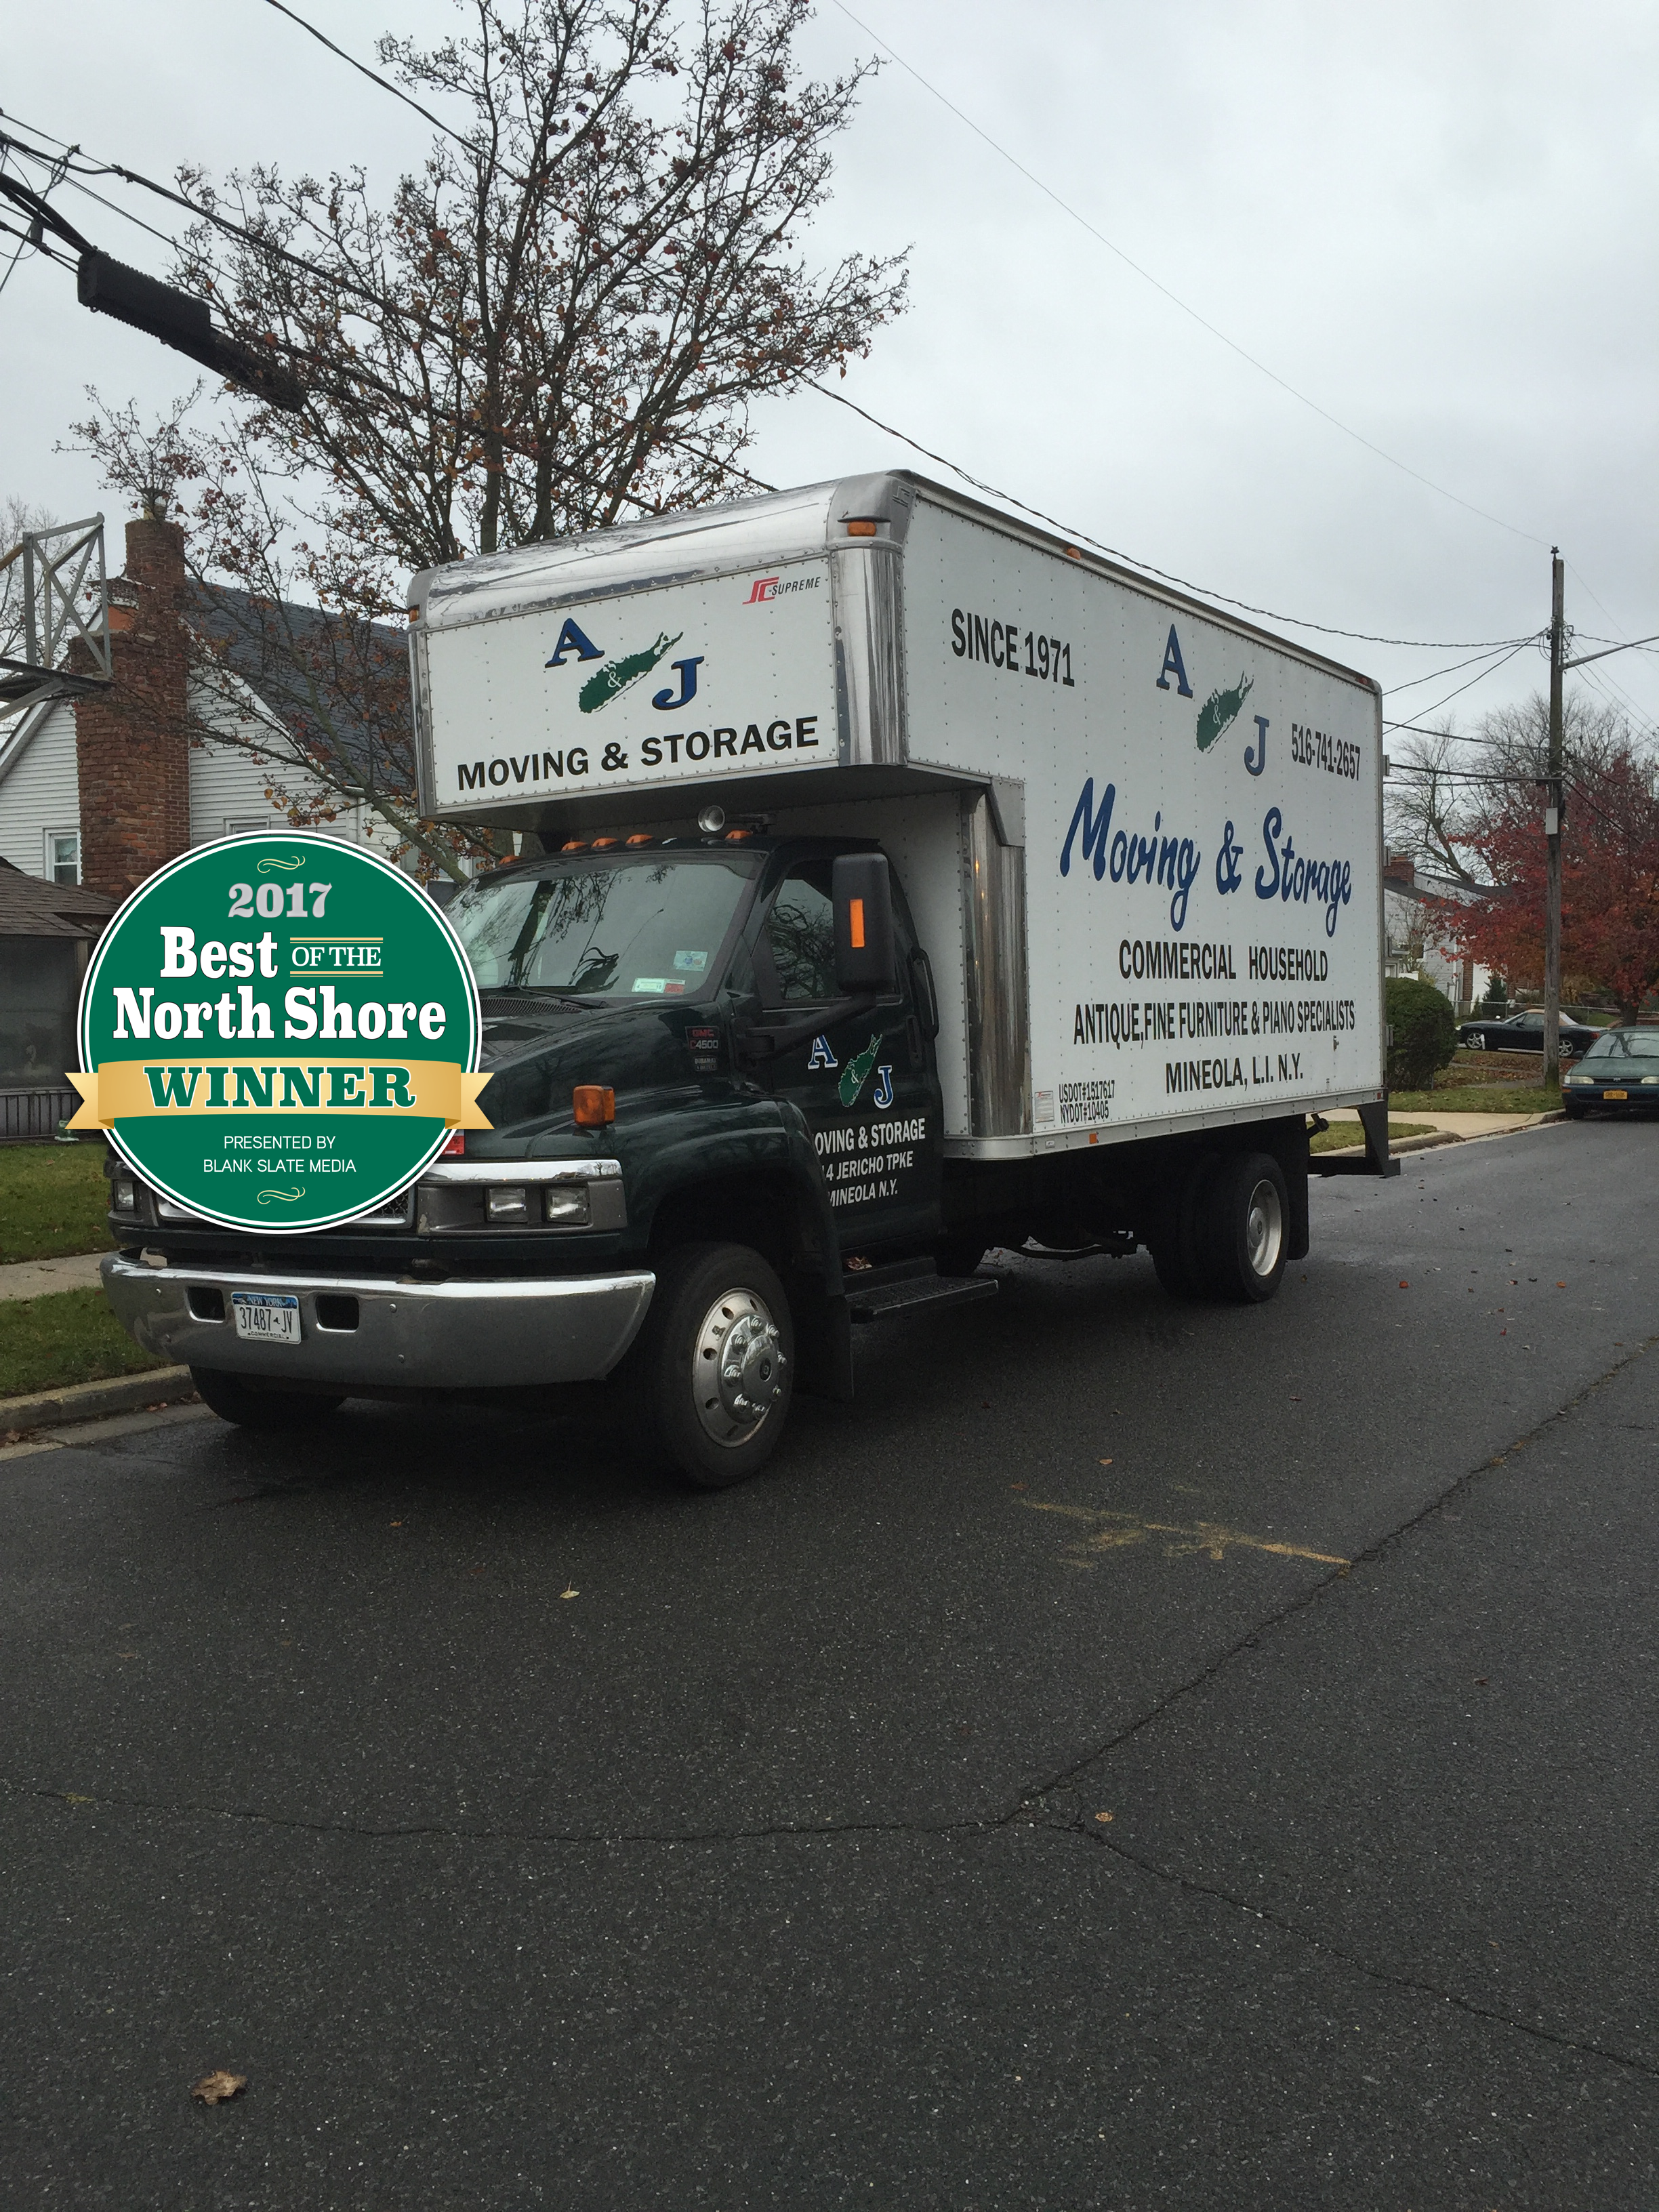 A & J Moving & Storage of Mineola NY Offers Junk removal services